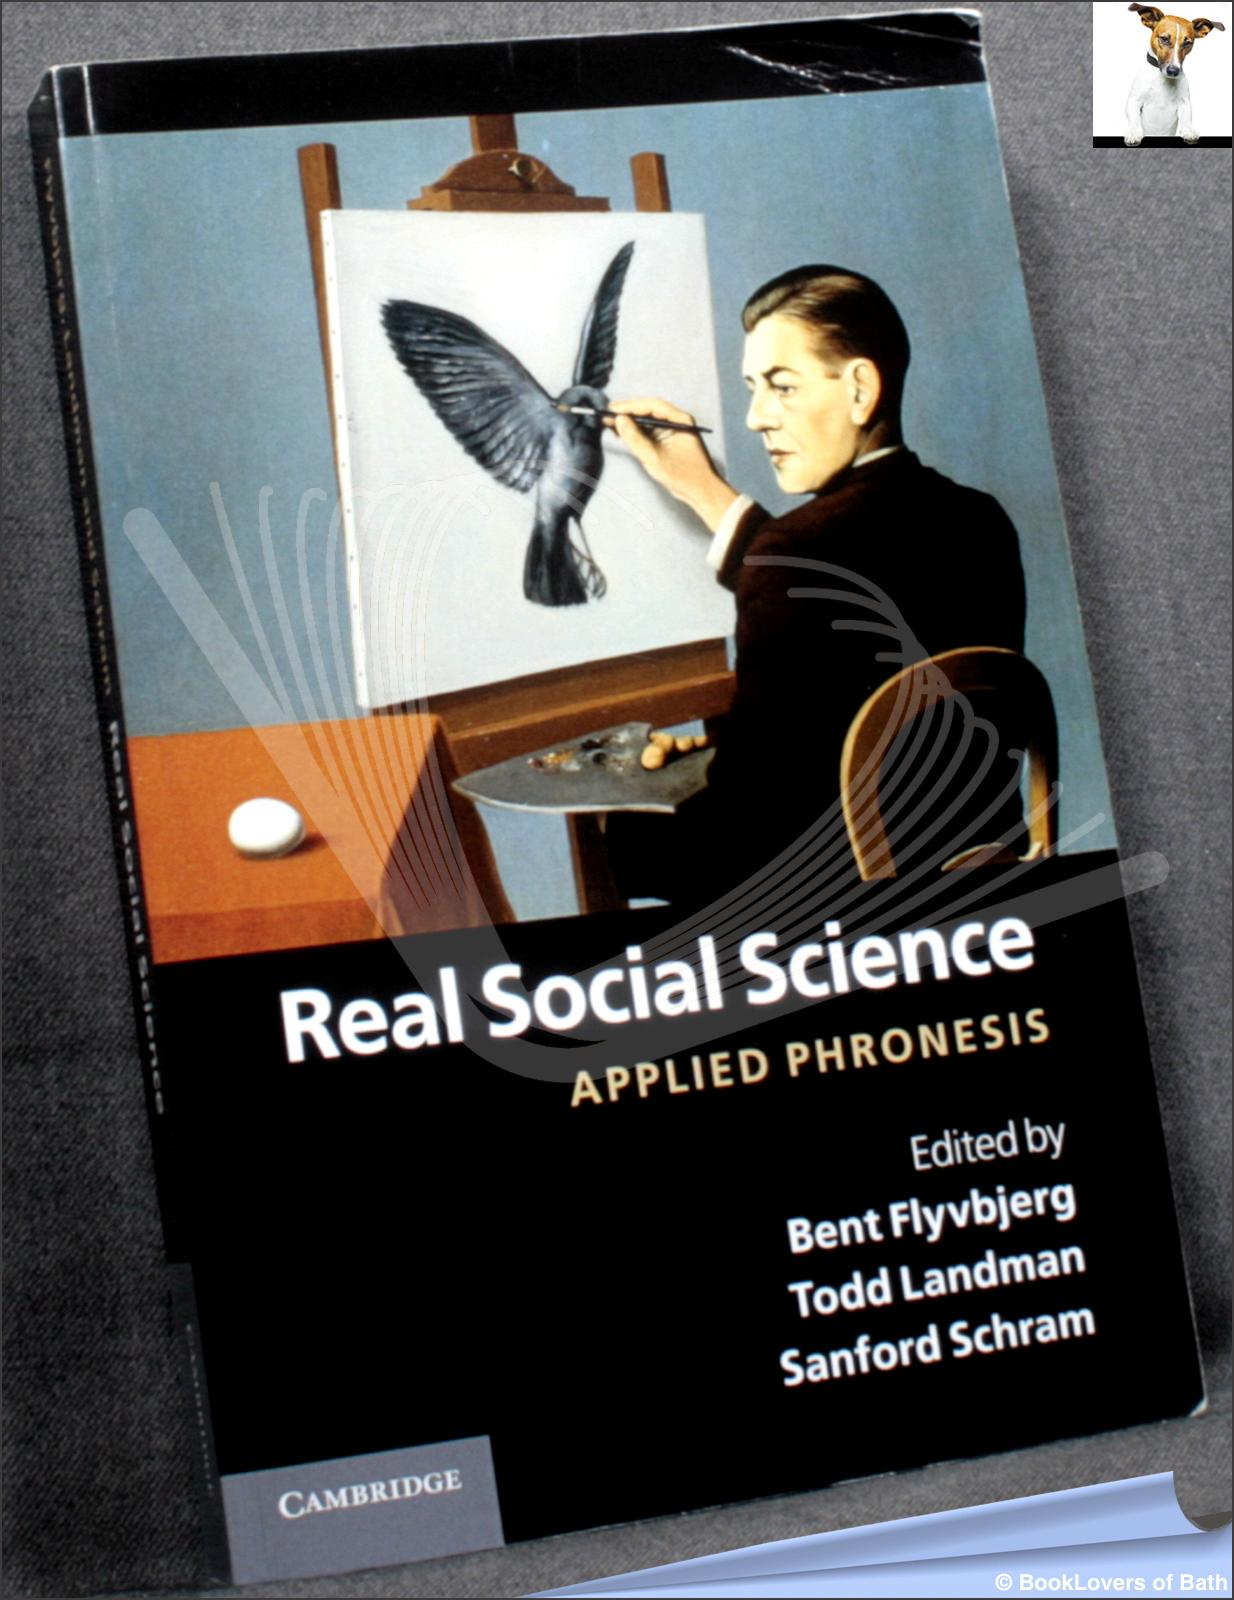 Real Social Science: Applied Phronesis - Edited by Bent Flyvbjerg, Todd Landman & Sanford Schram